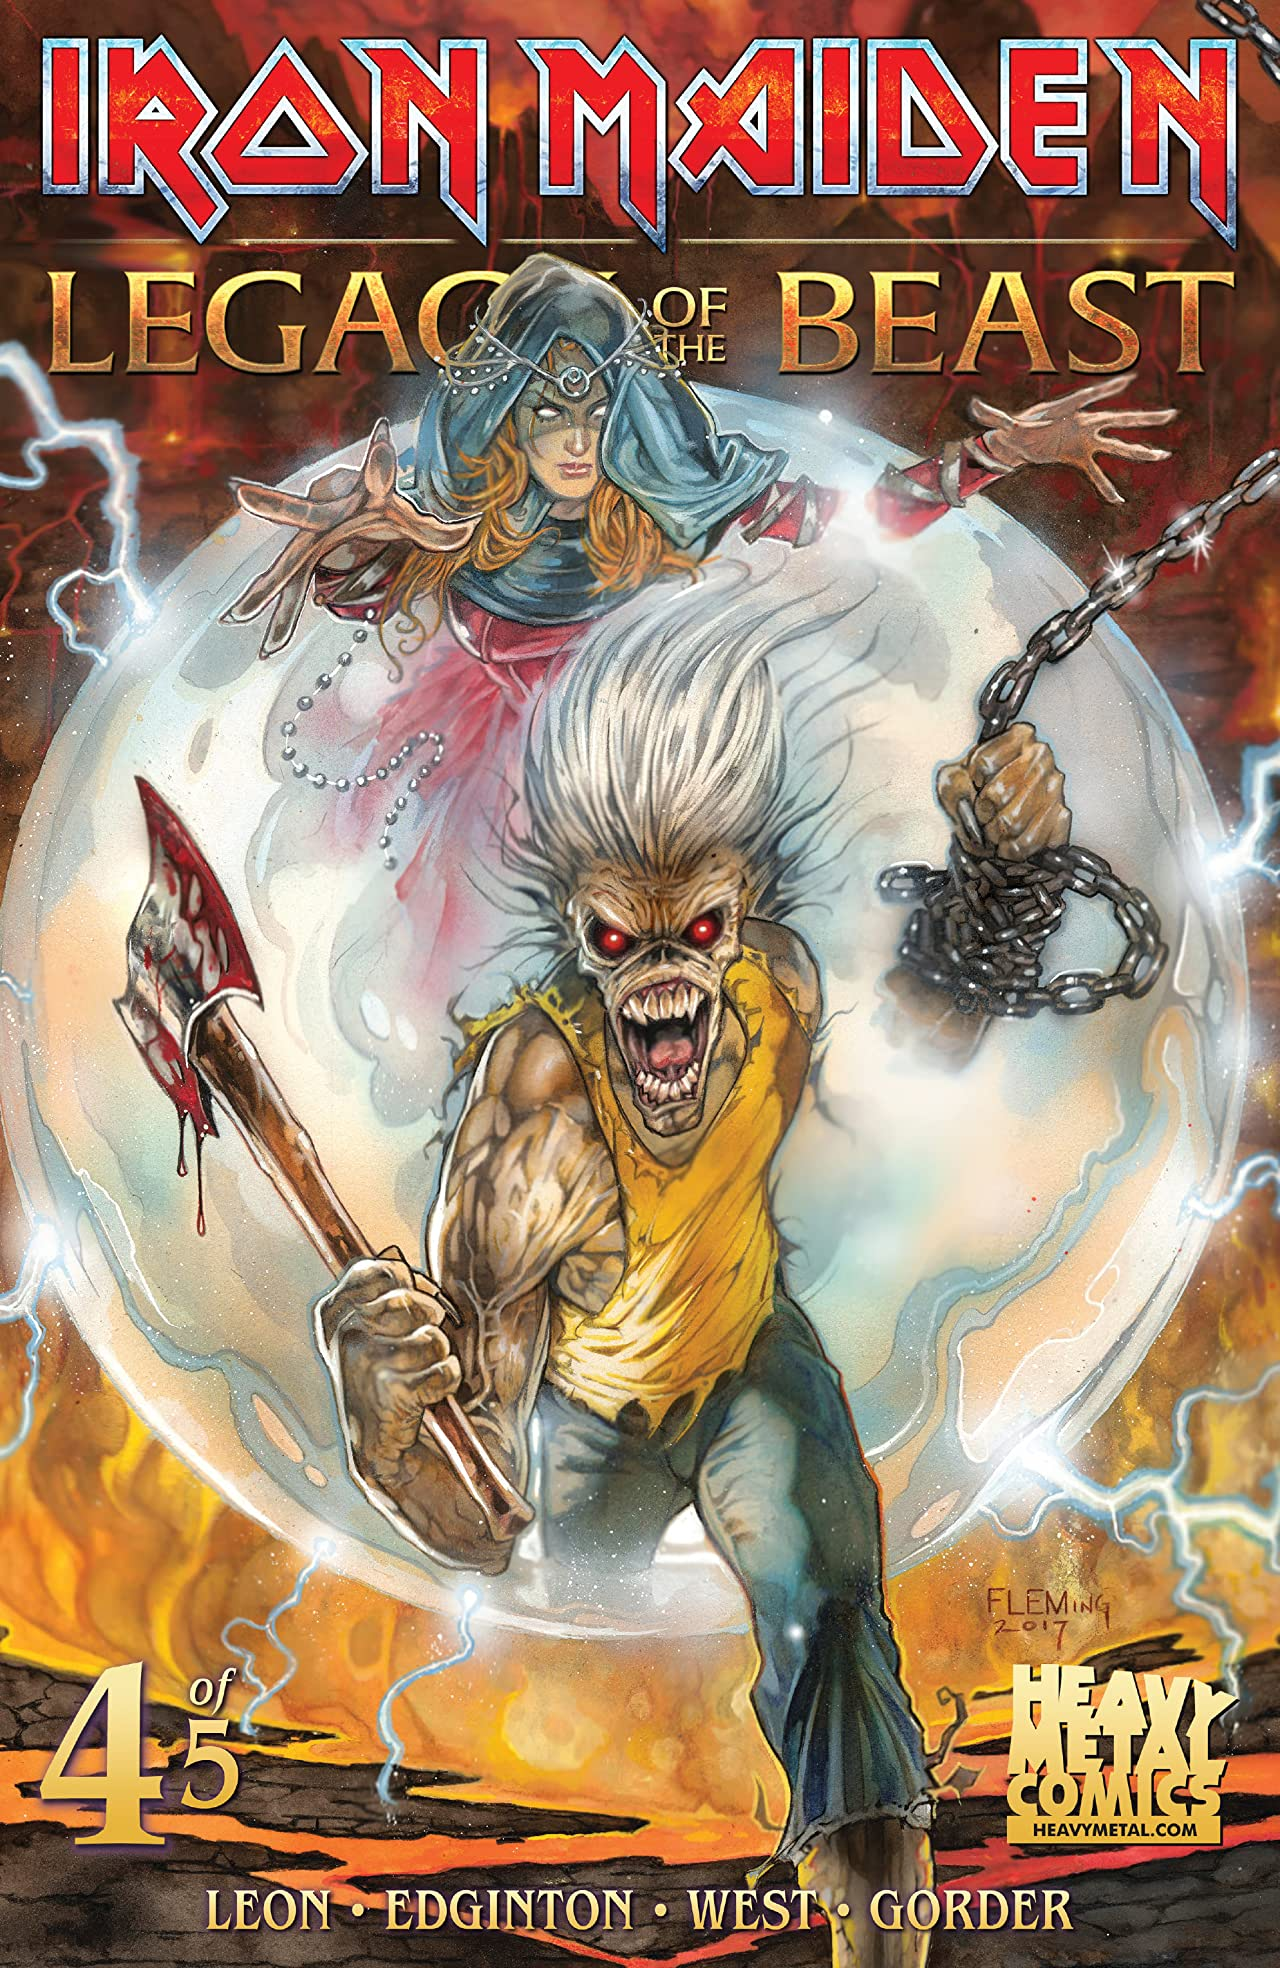 Iron Maiden: Legacy of the Beast #4 (of 5)